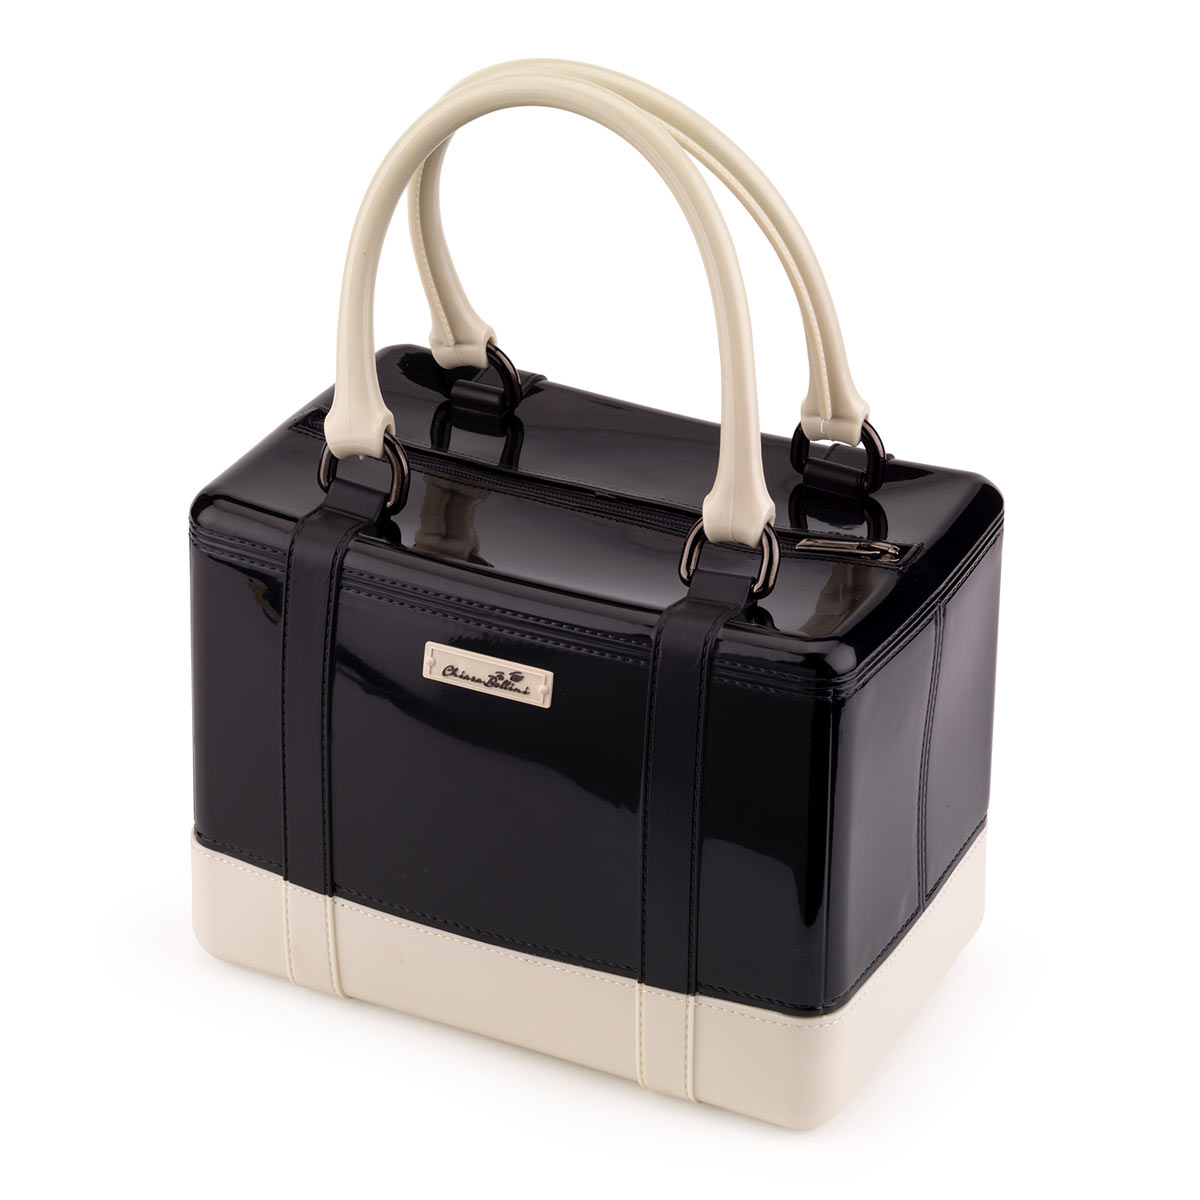 Satchel handbag in solid coloured bright PVC